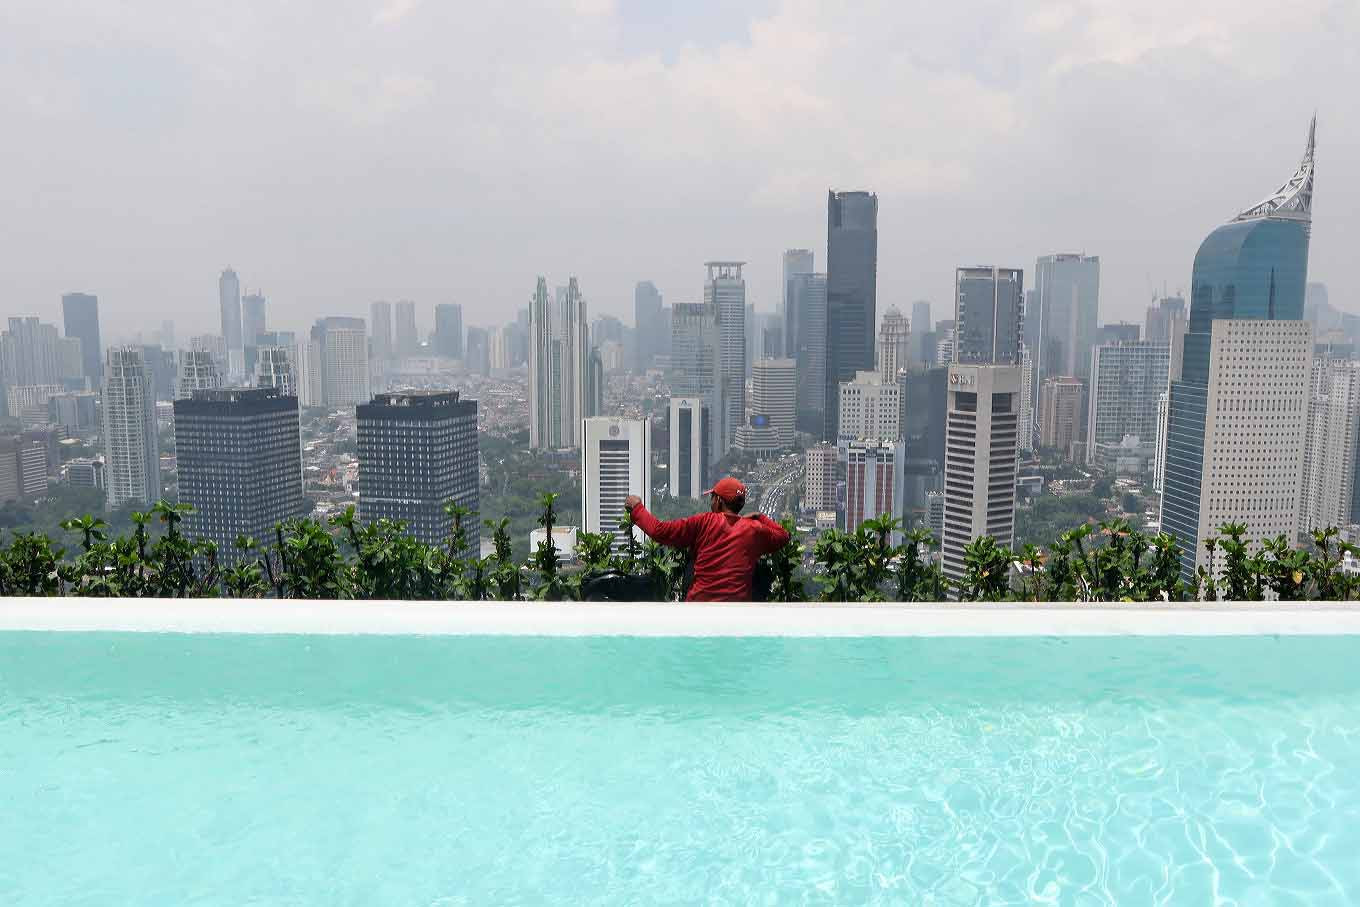 Clouds thicken over Indonesia's economic growth as uncertainties persist